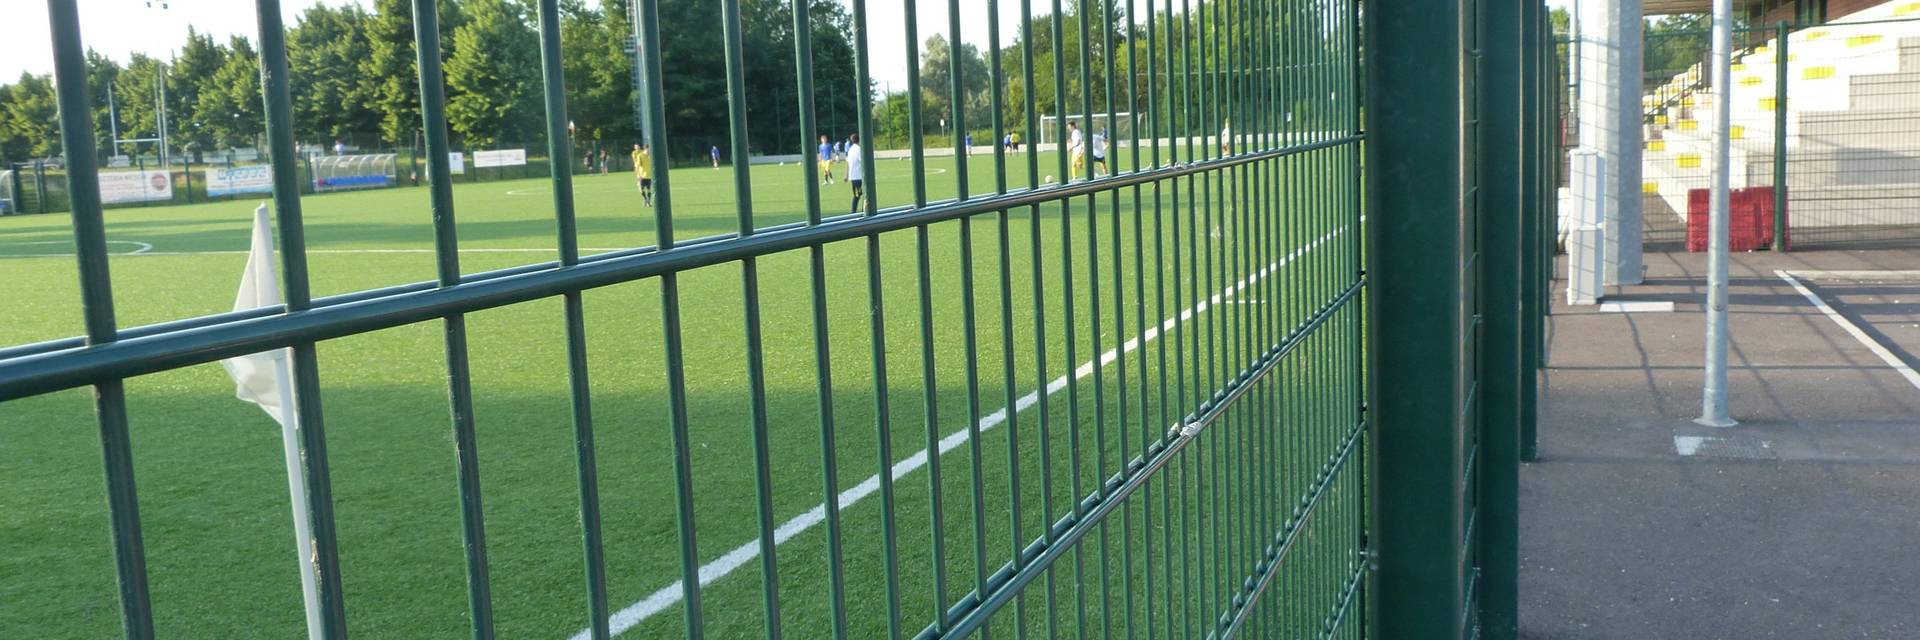 Dark green double wire fences are installed along the football field.